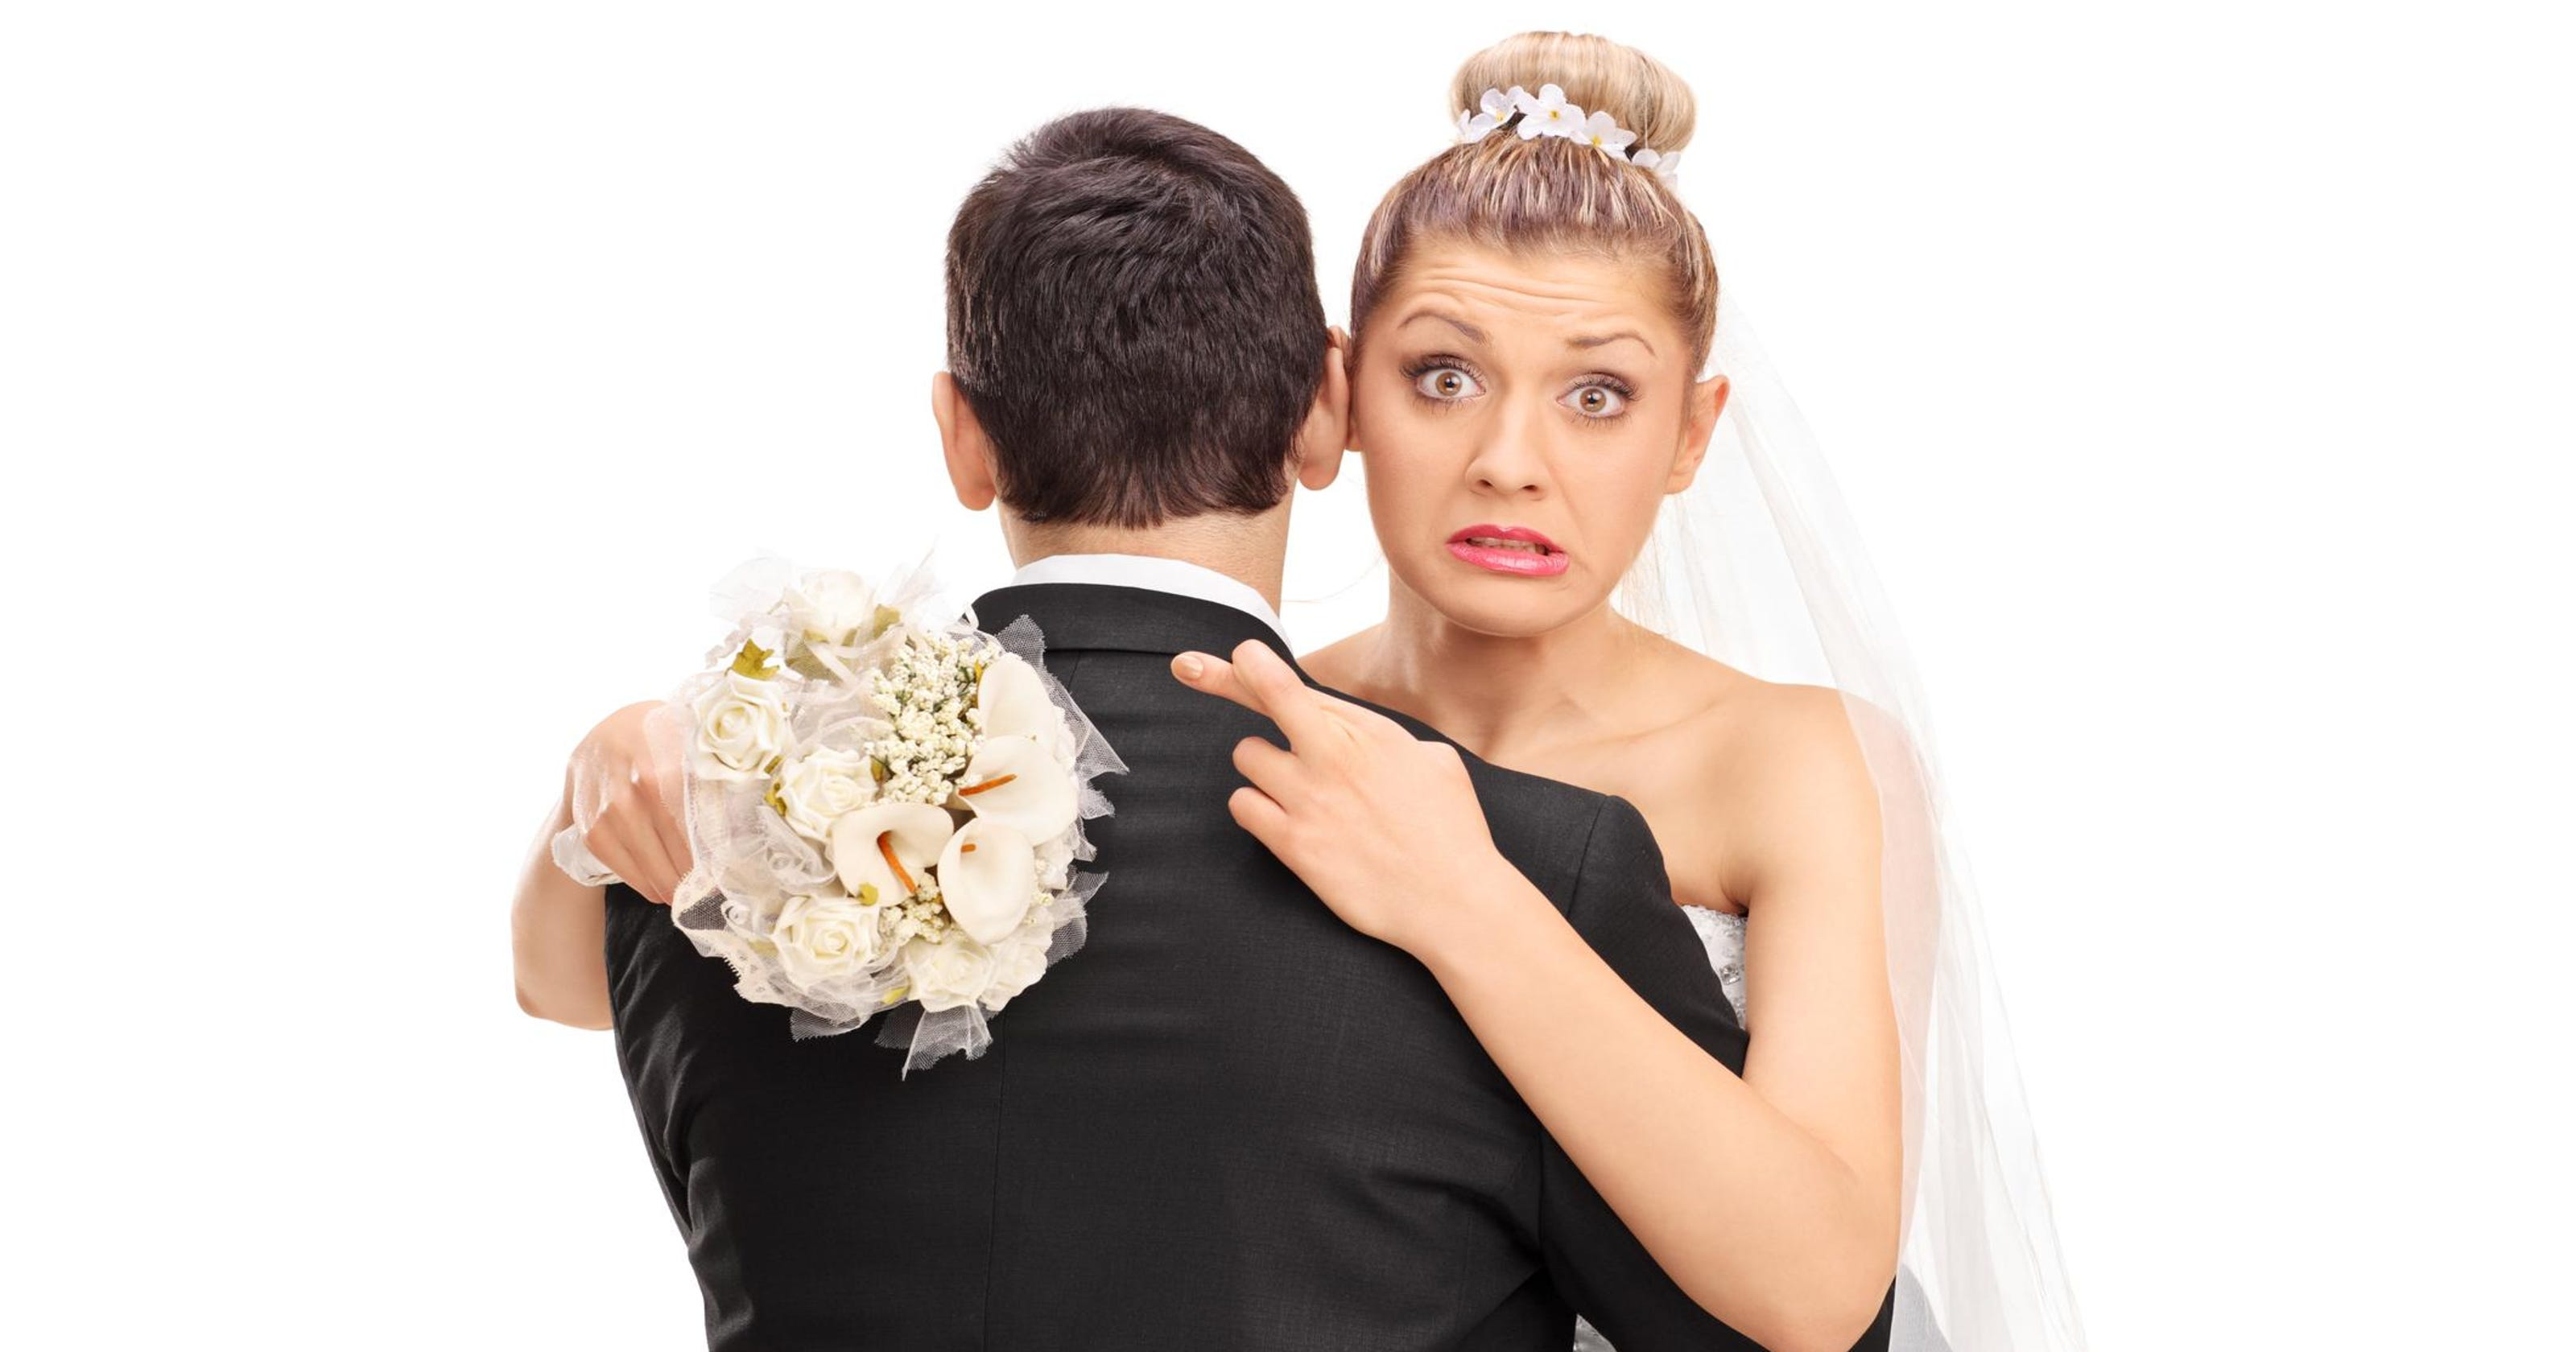 Ask Dr  Marcia: My cheating ex-husband wants me back